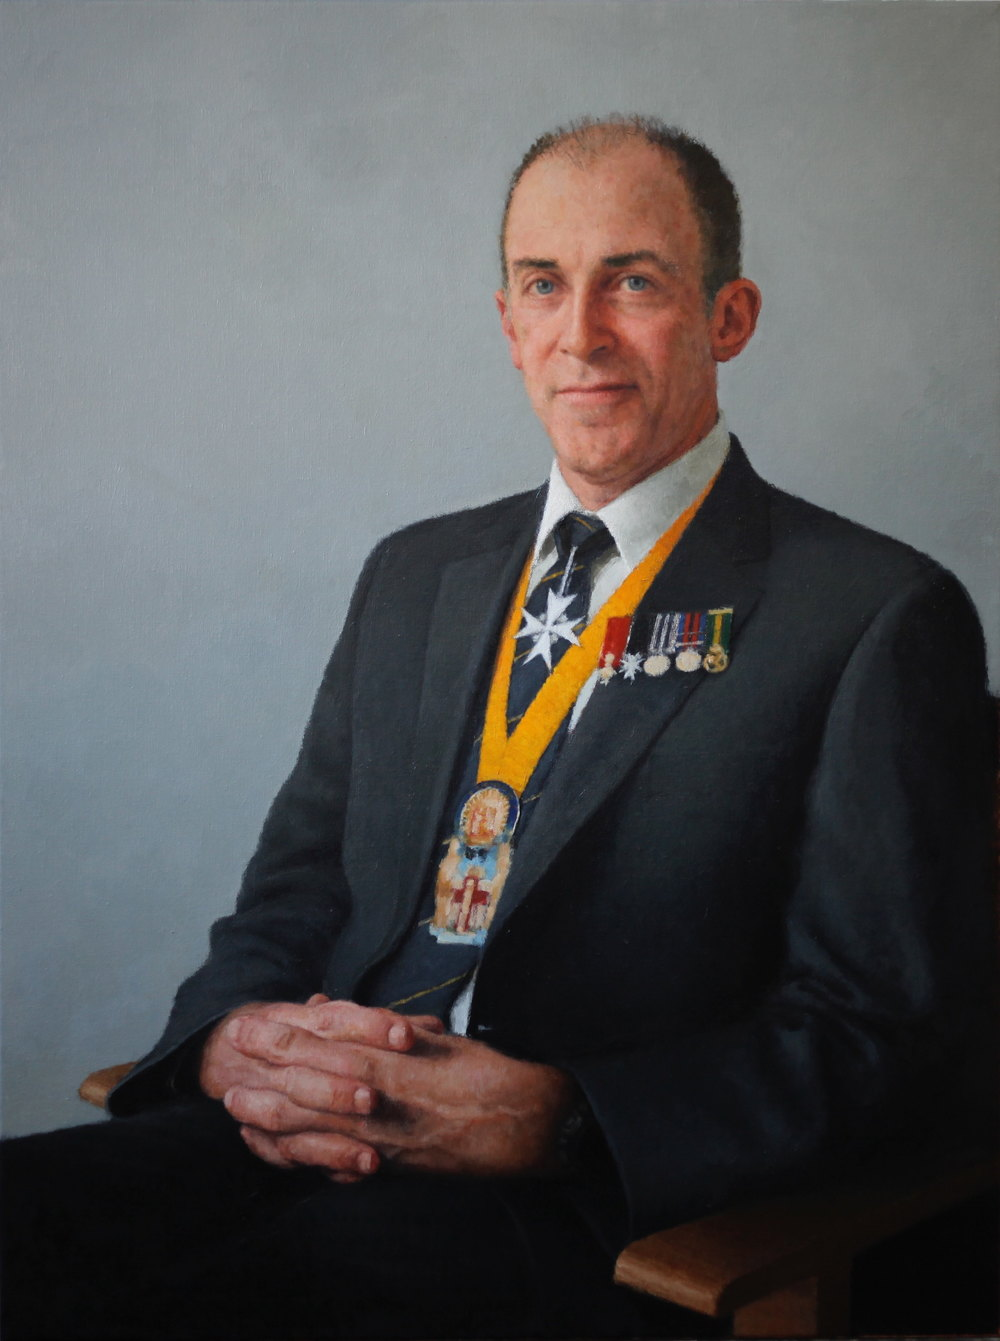 Dr Ian Civil, 2012, Oil on linen, 900mm x 1200mm